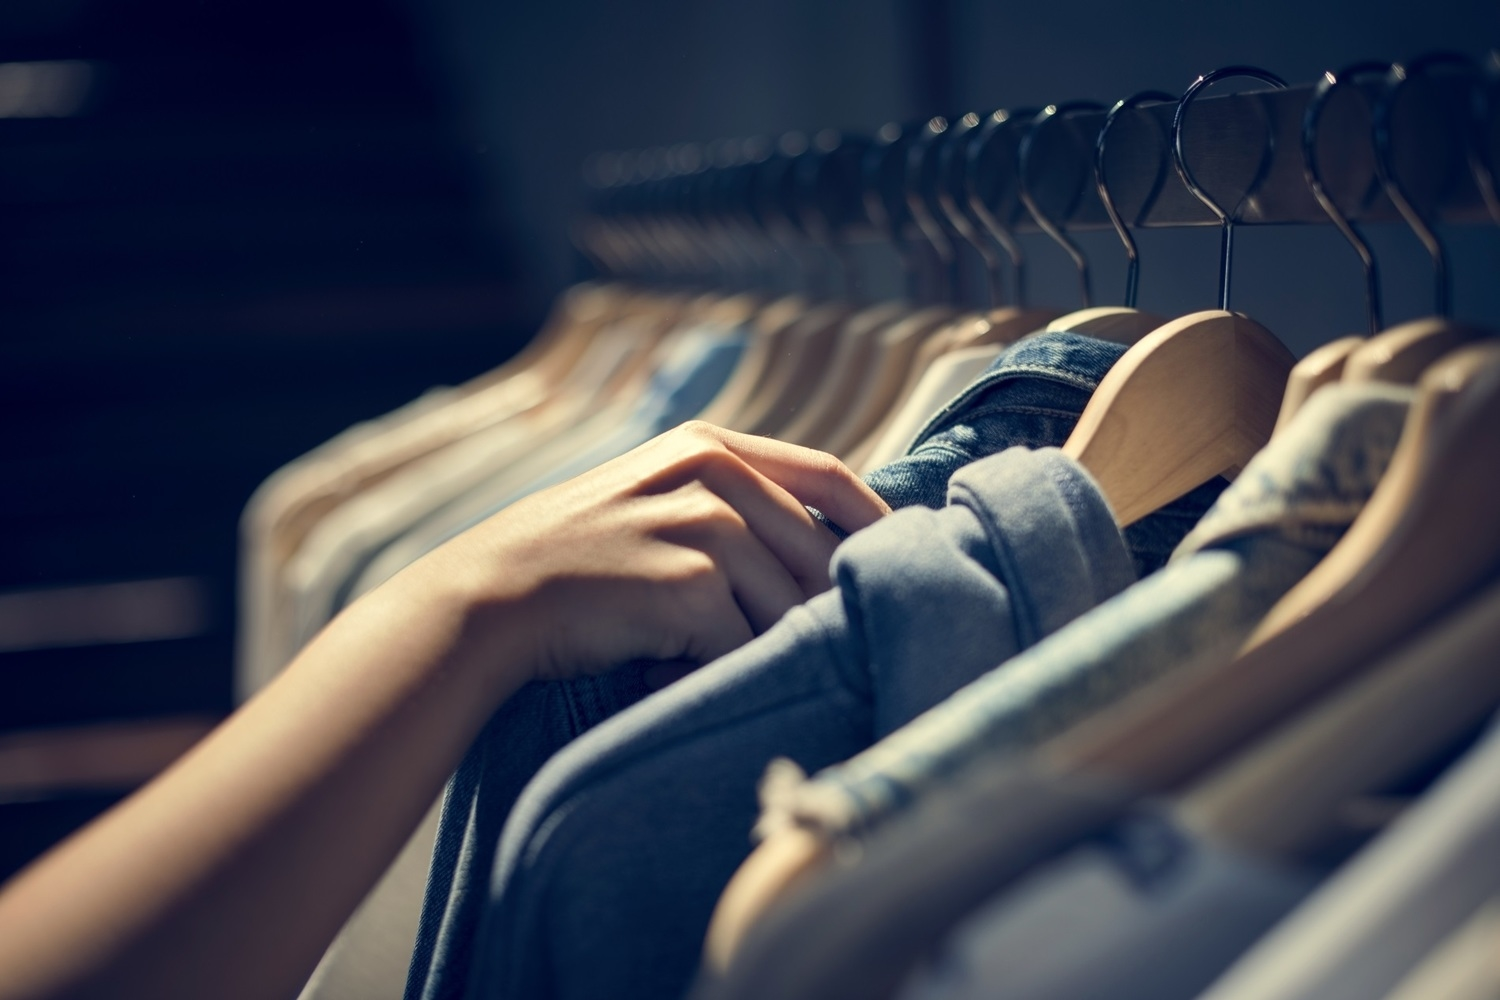 5 common retail scams